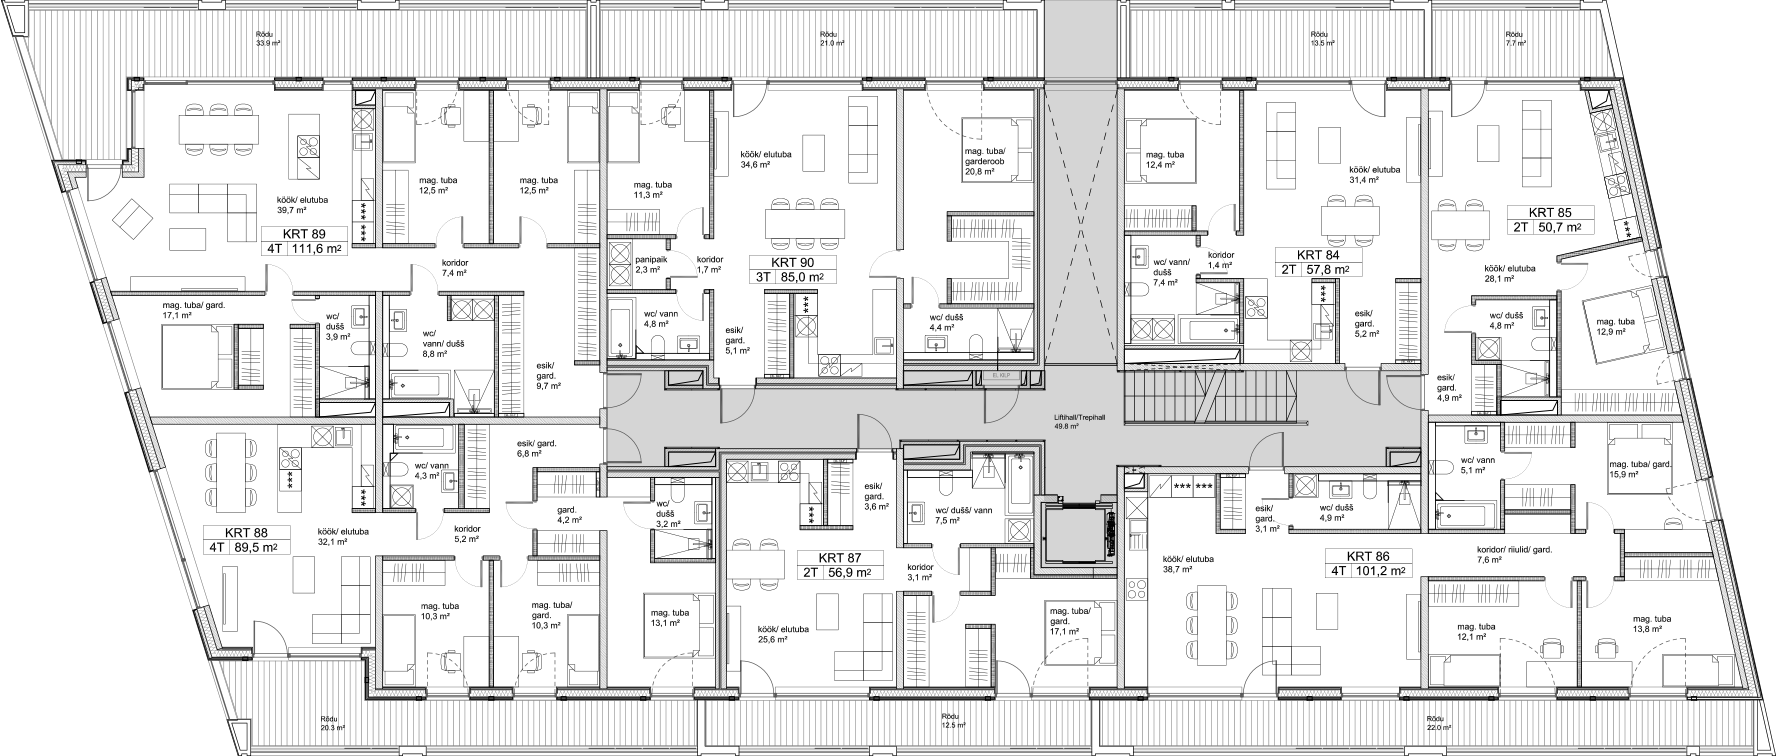 Floor 2 plan of Kiikri Apartment House C